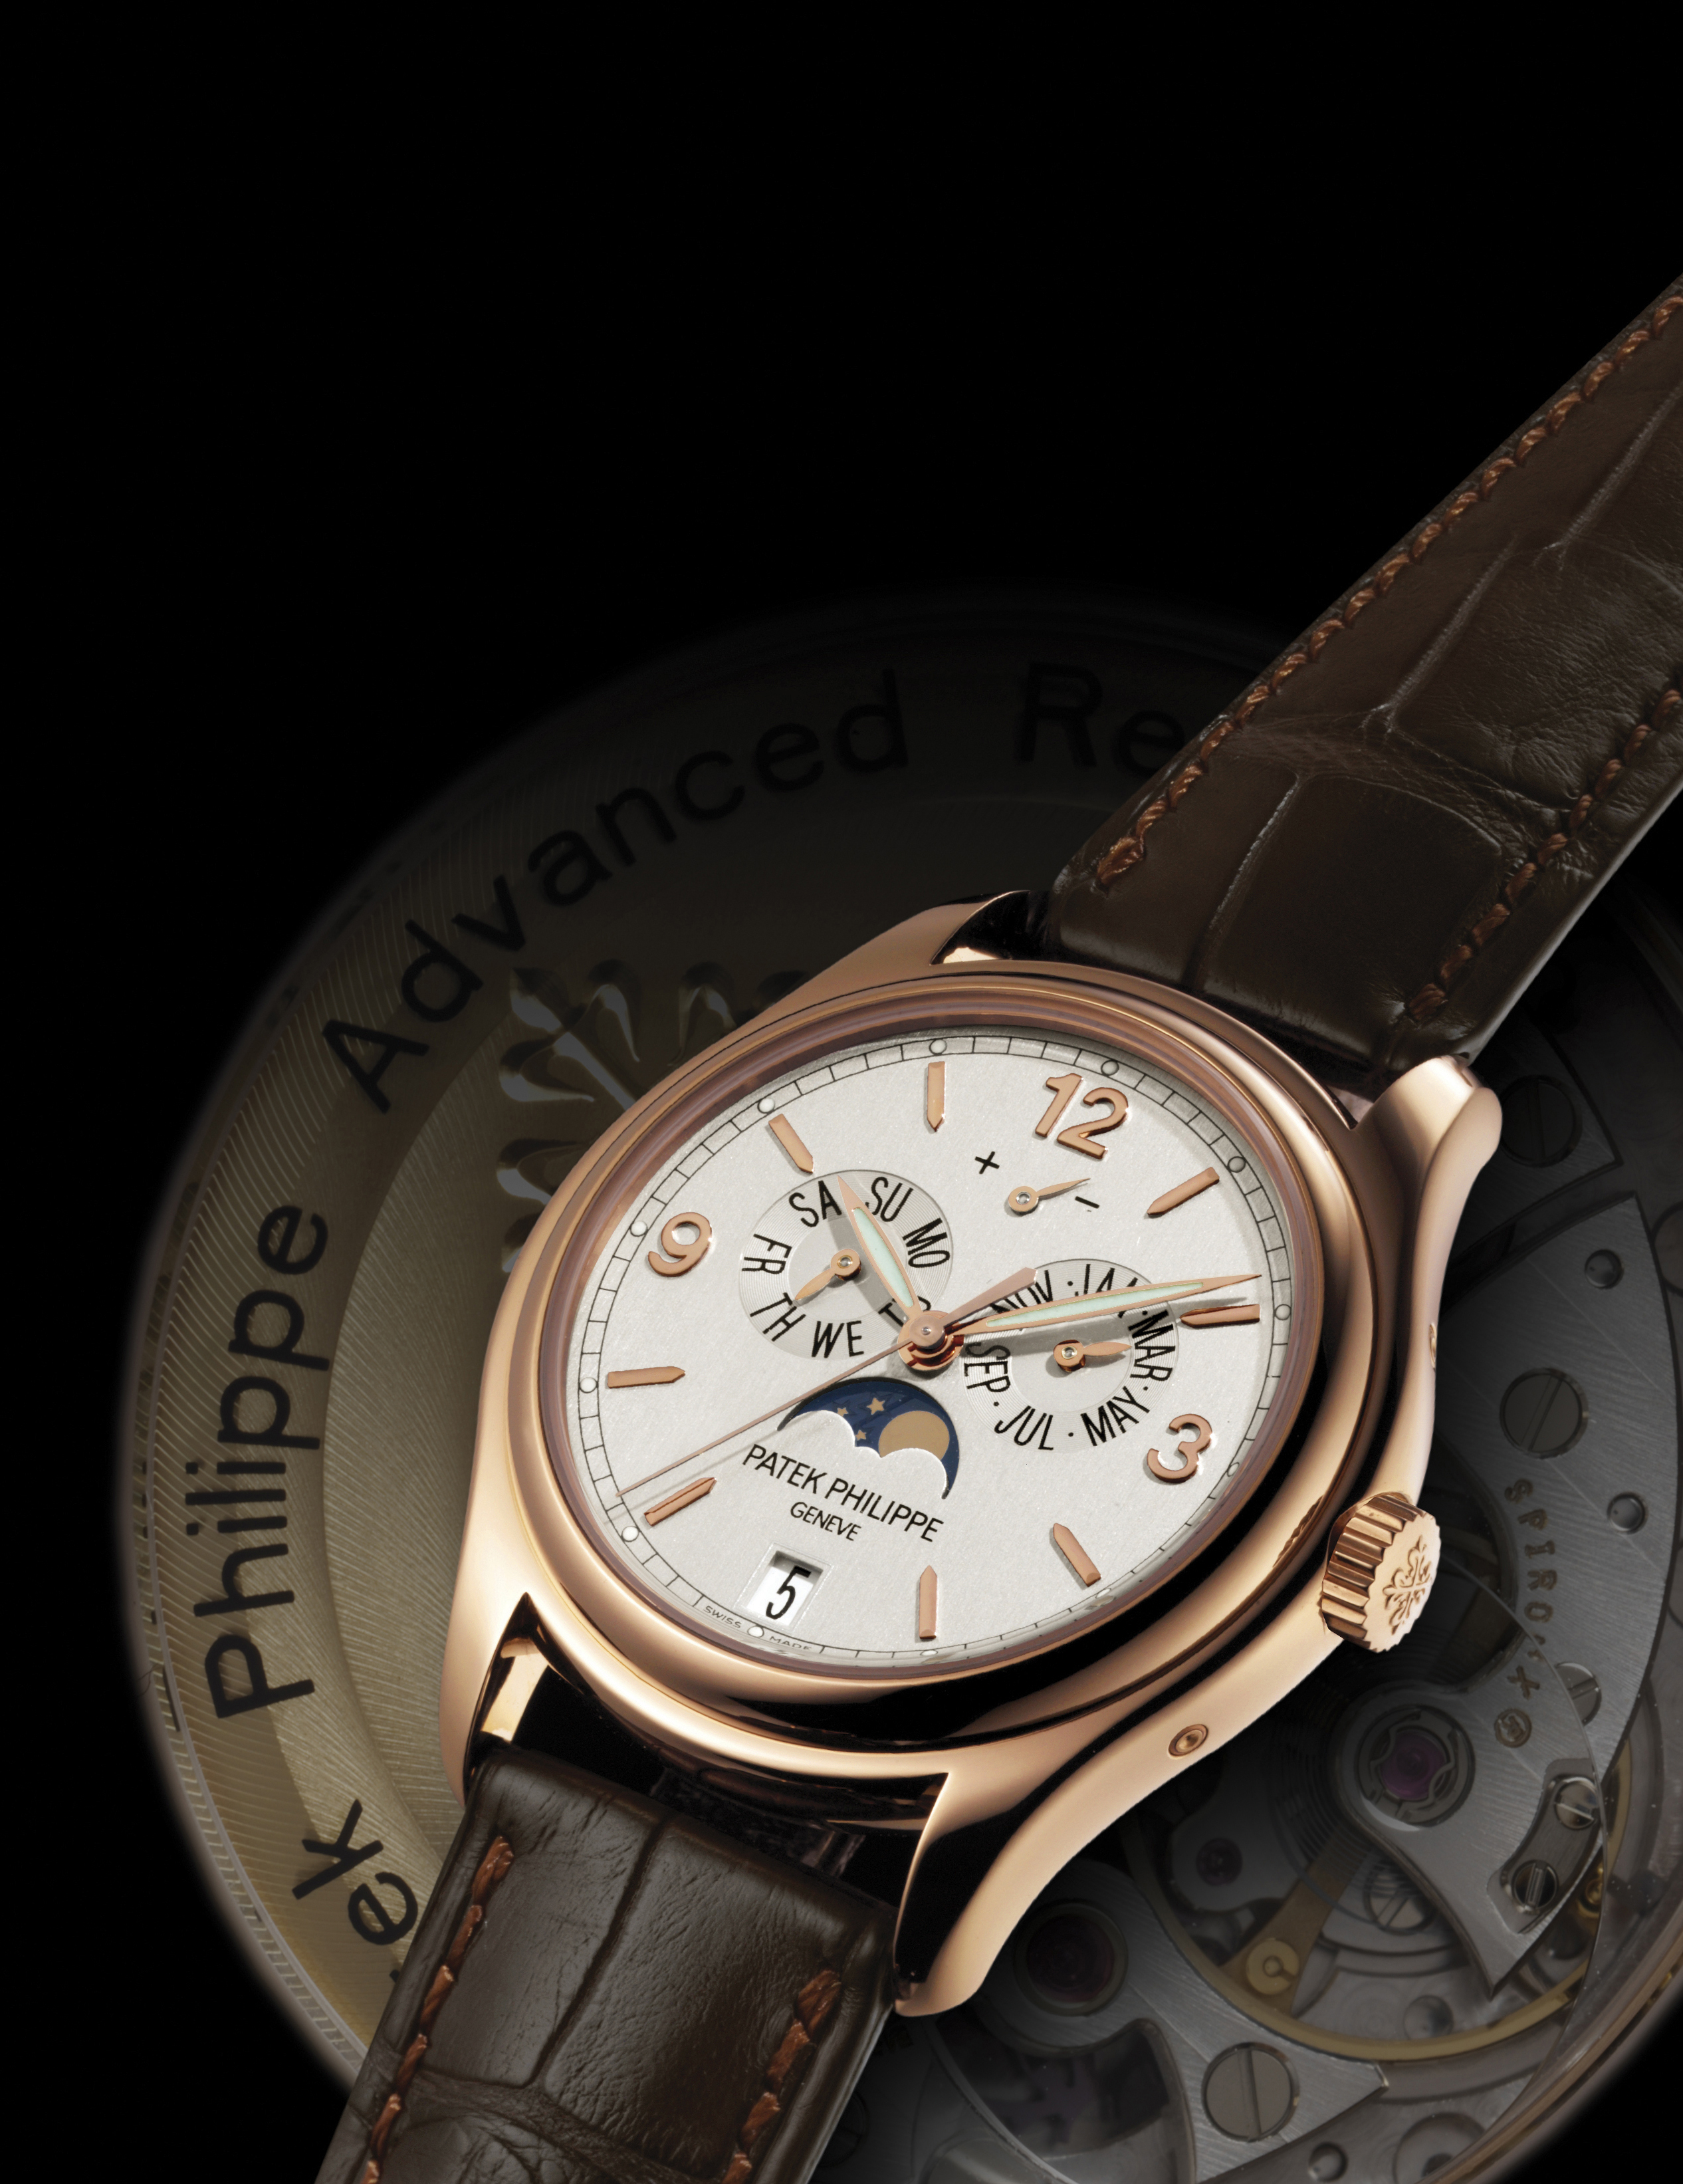 PATEK PHILIPPE. A FINE AND RARE 18K PINK GOLD LIMITED EDITION AUTOMATIC ANNUAL CALENDAR WRISTWATCH WITH SWEEP CENTRE SECONDS, MOON PHASES, POWER RESERVE, SILICON ESCAPE WHEEL AND SILINVAR SPIROMAX BALANCE SPRING, ORIGINAL CERTIFICATE AND BOX